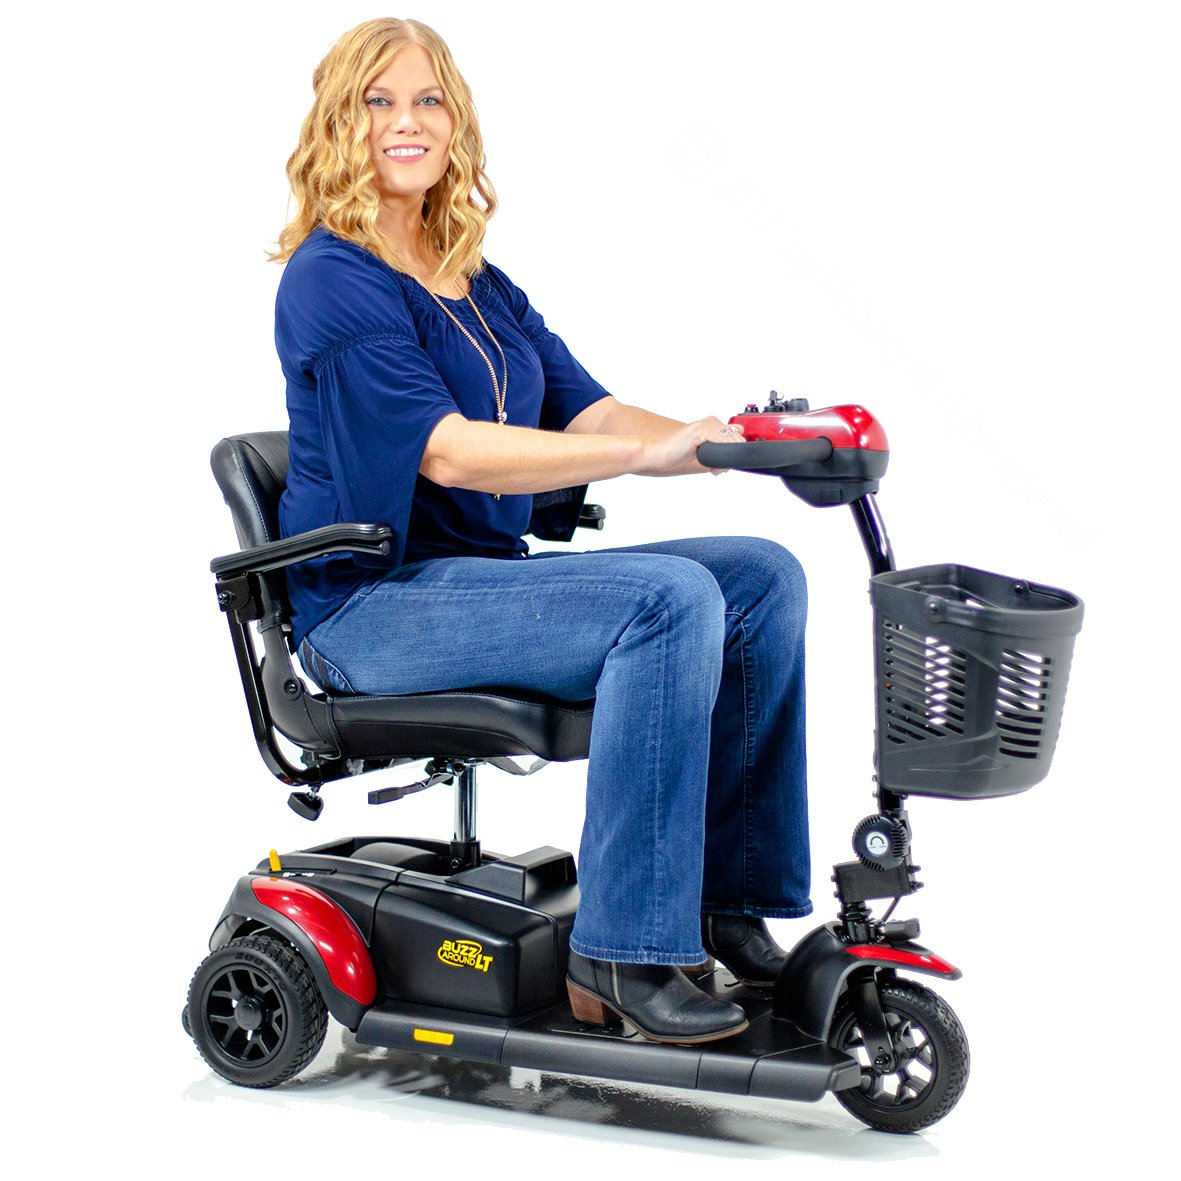 BUZZAROUND LT 3-Wheel Small Portable Travel Mobility Scooter GB107